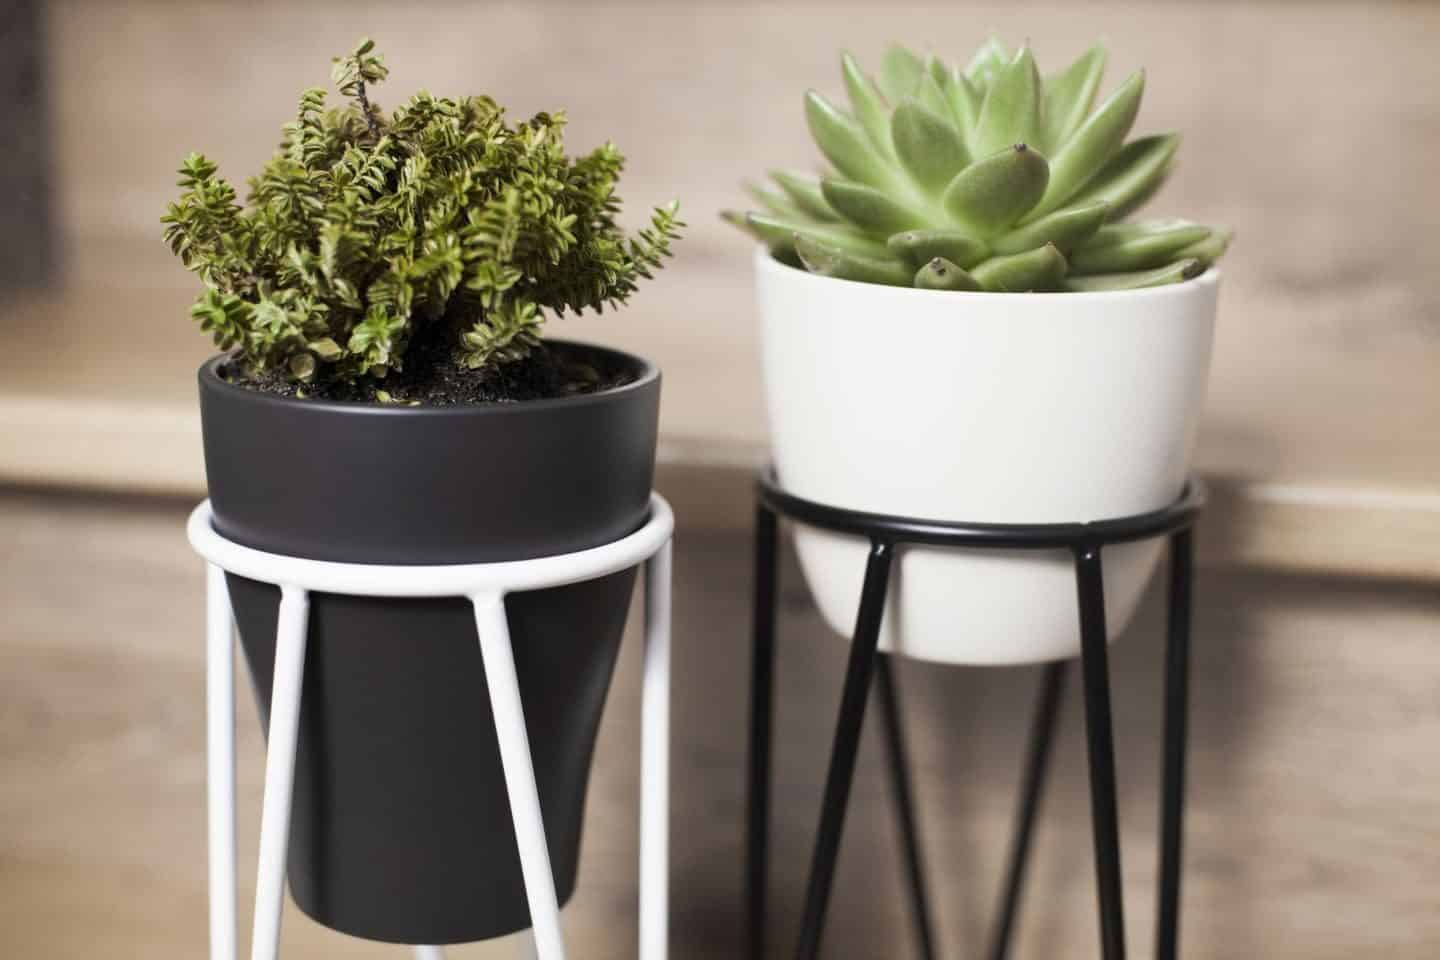 Minimalist design-led plant stands from Polish design studio Bujnie